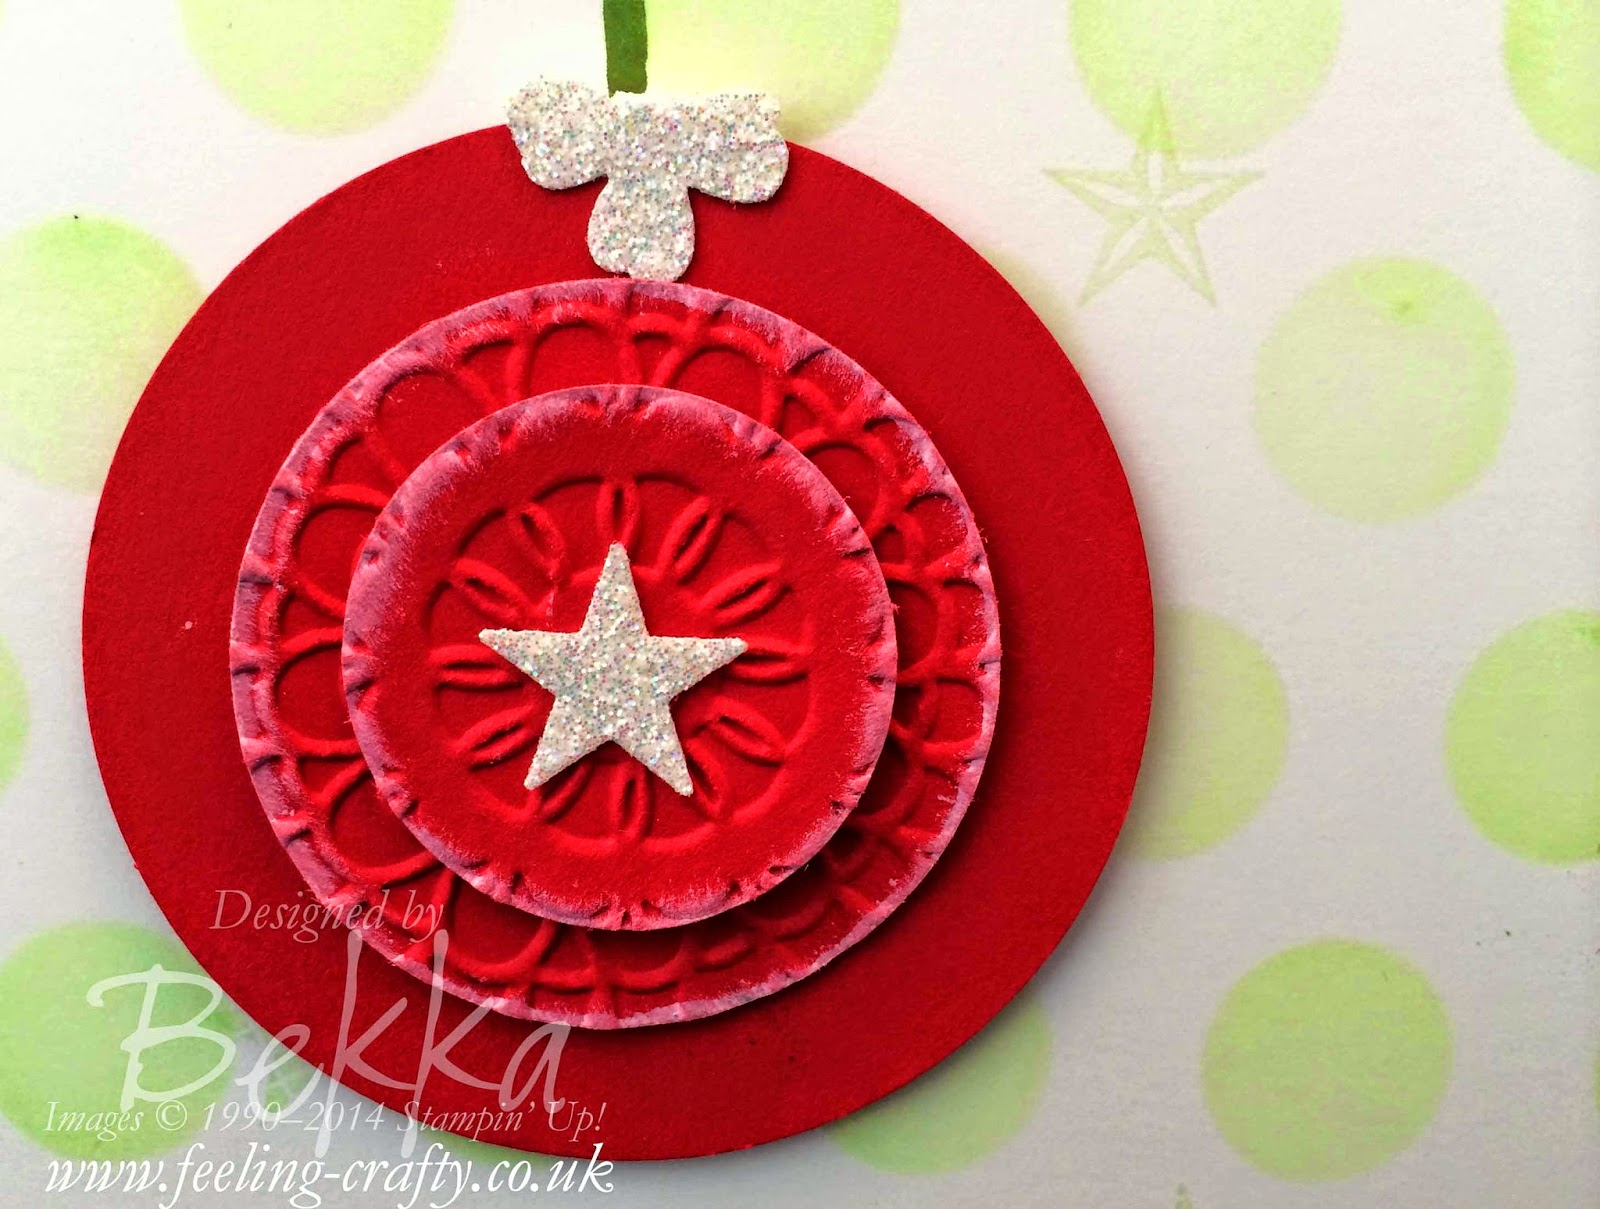 Christmas Scrapbook Page made with non Christmas Stampin' Up! Supplies - check this blog ever week for Scrapbooking Ideas